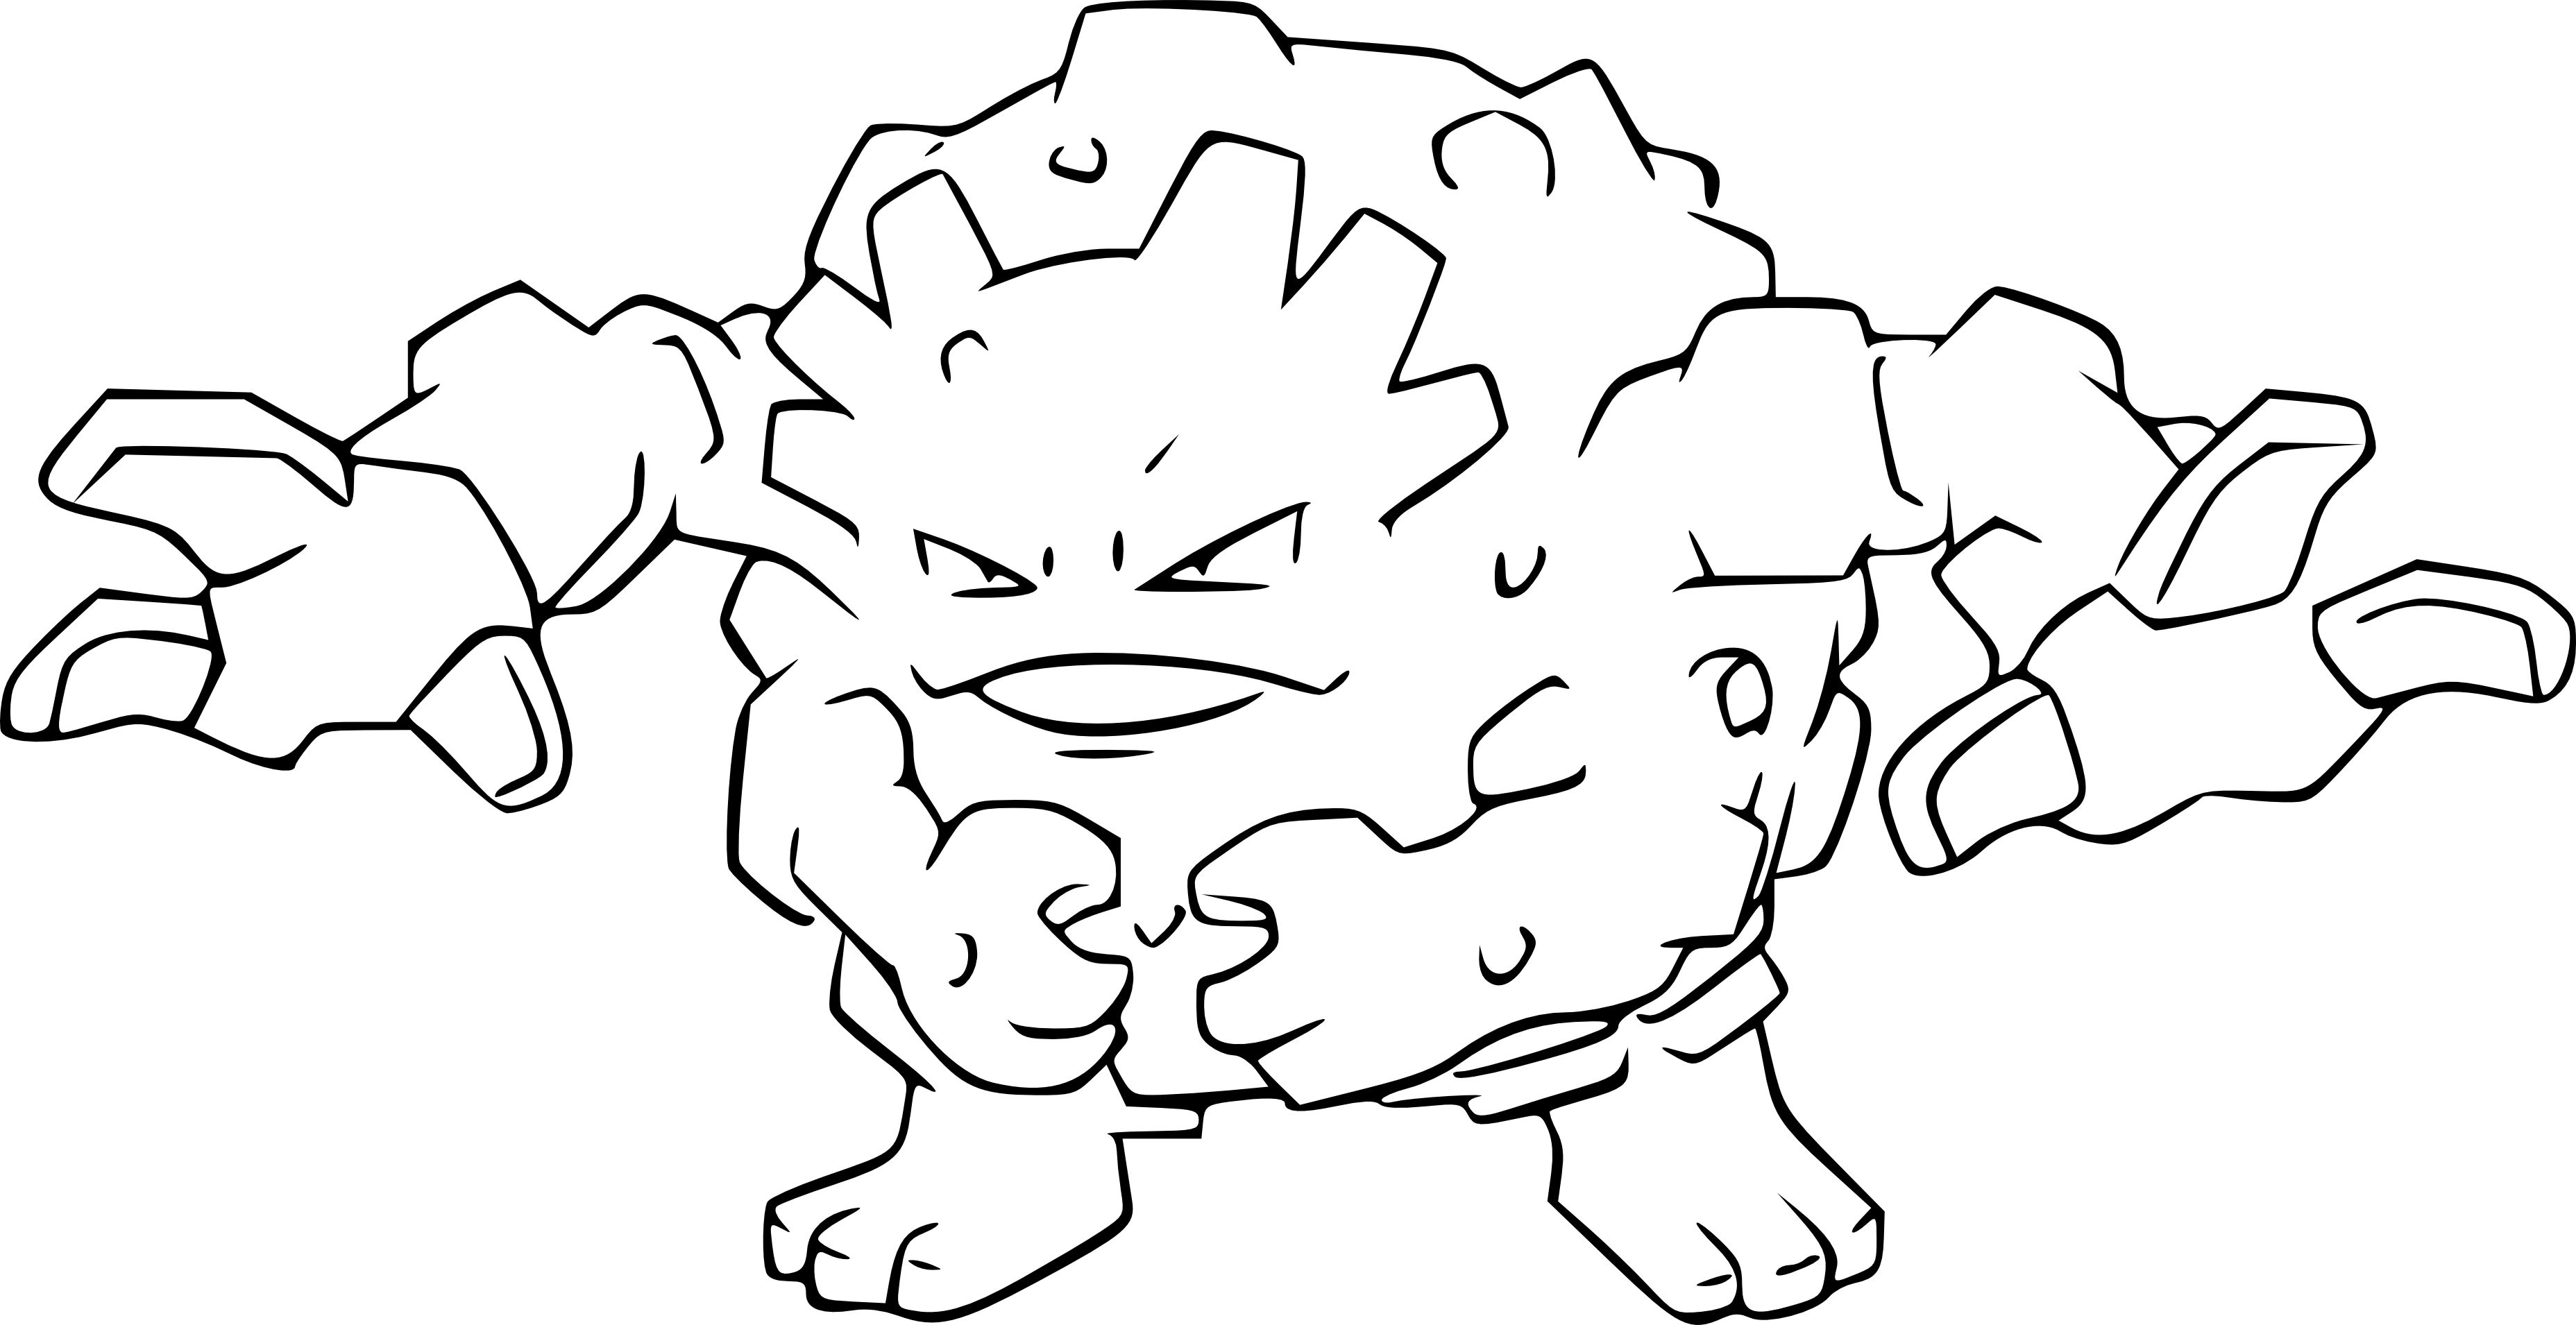 Graveler Buscar Con Google Coloring Pages Free Printable Coloring Pages Printable Coloring Pages